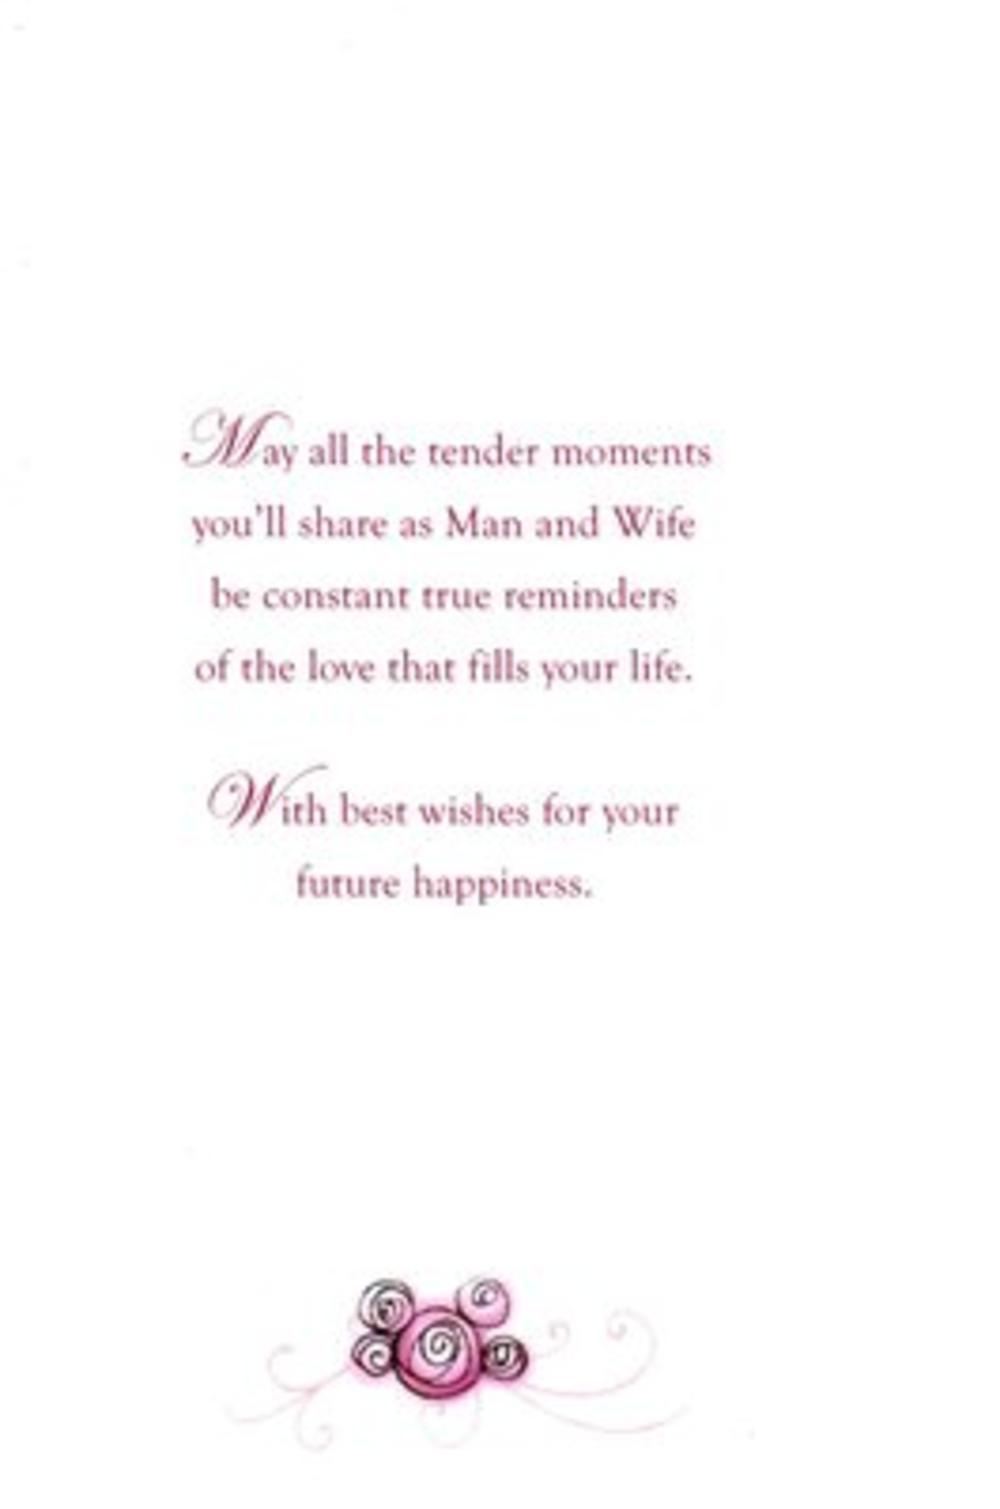 son amp wife poetry in motion wedding card cards love kates